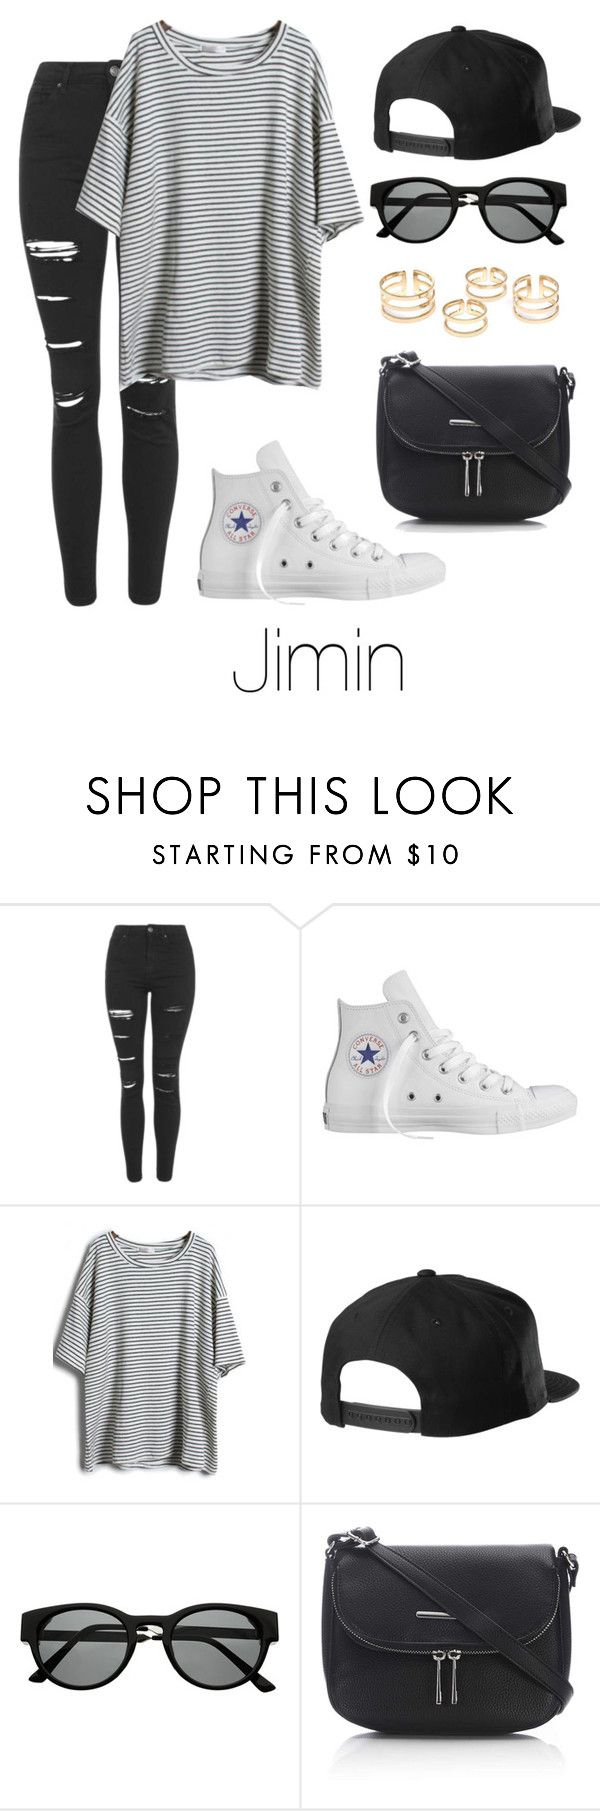 Jimin Inspired w/ Converse by btsoutfits on Polyvore featuring Topshop, Converse, Wallis and Retrò